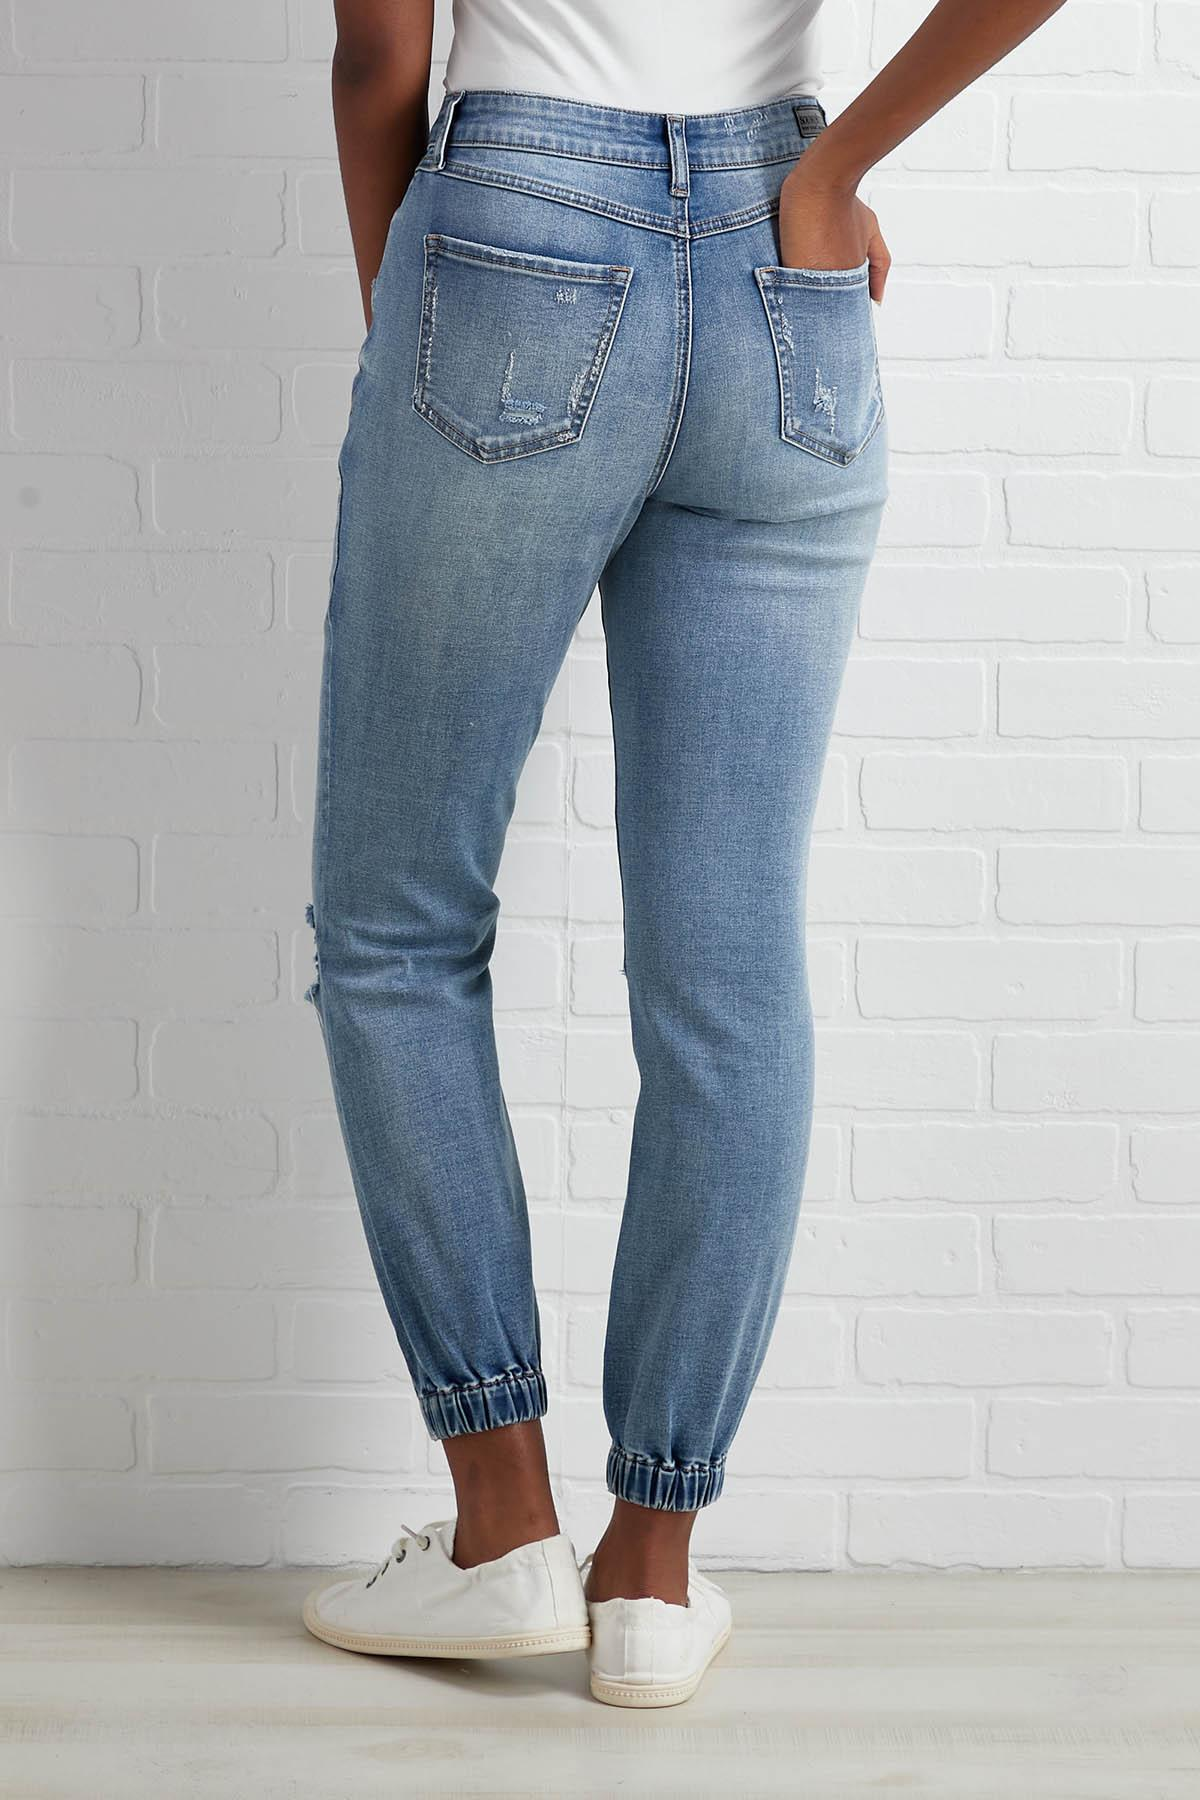 In A Bliss Jeans